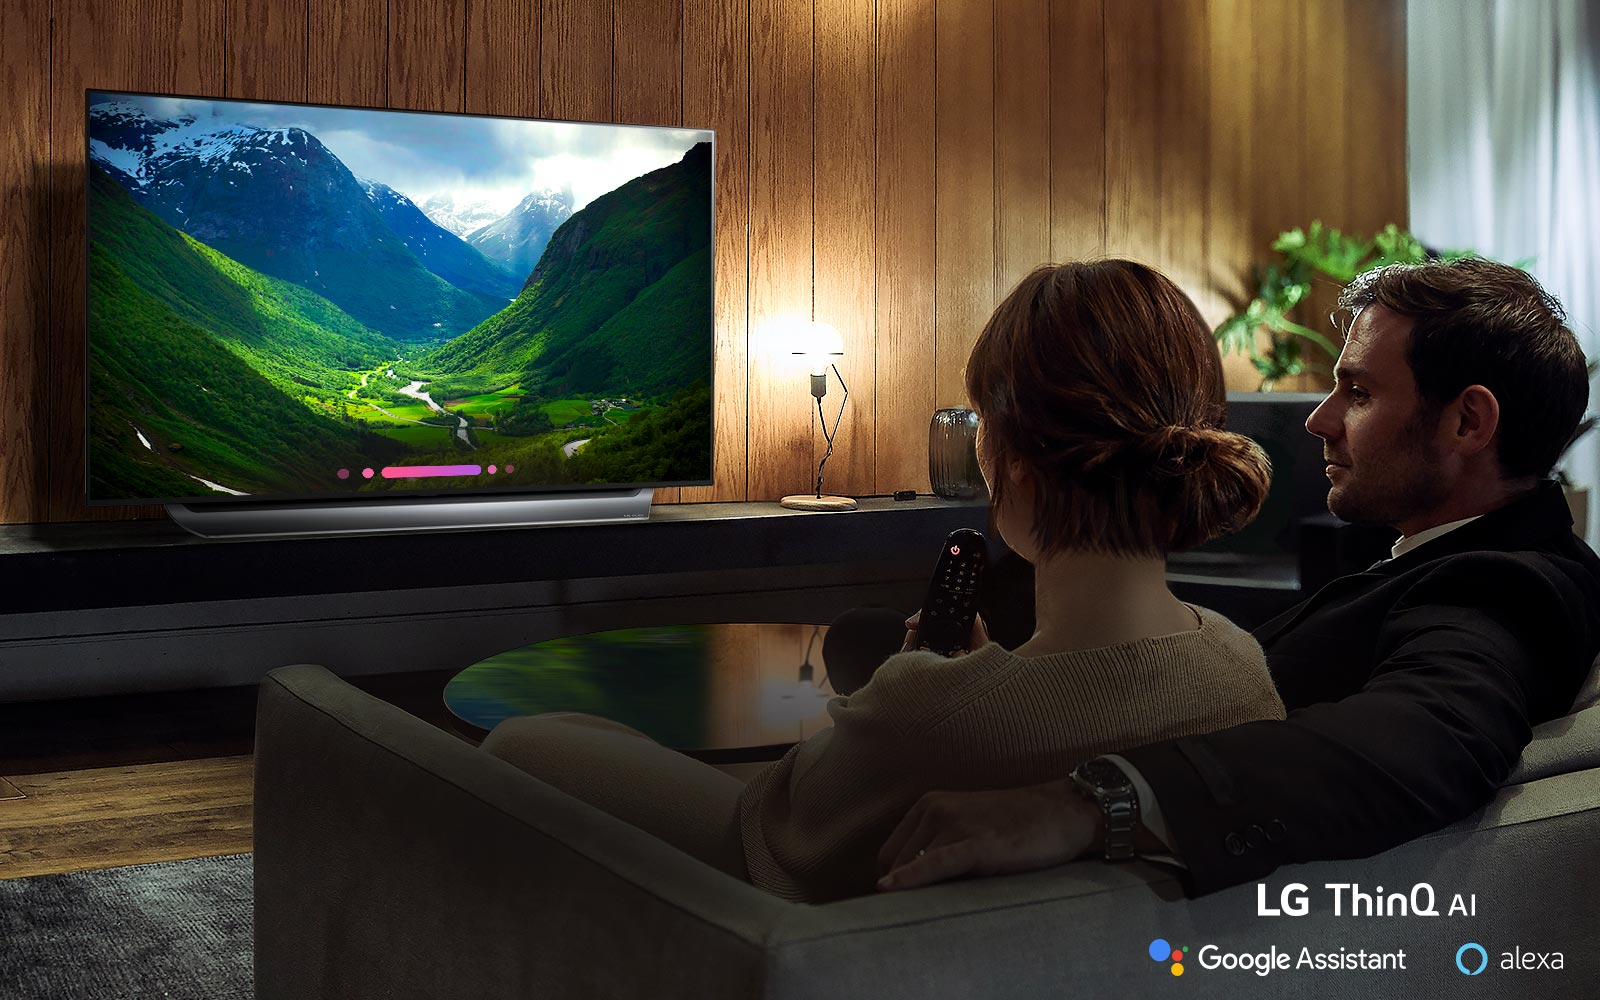 Introducing a more intelligent TV with LG ThinQ® AI1